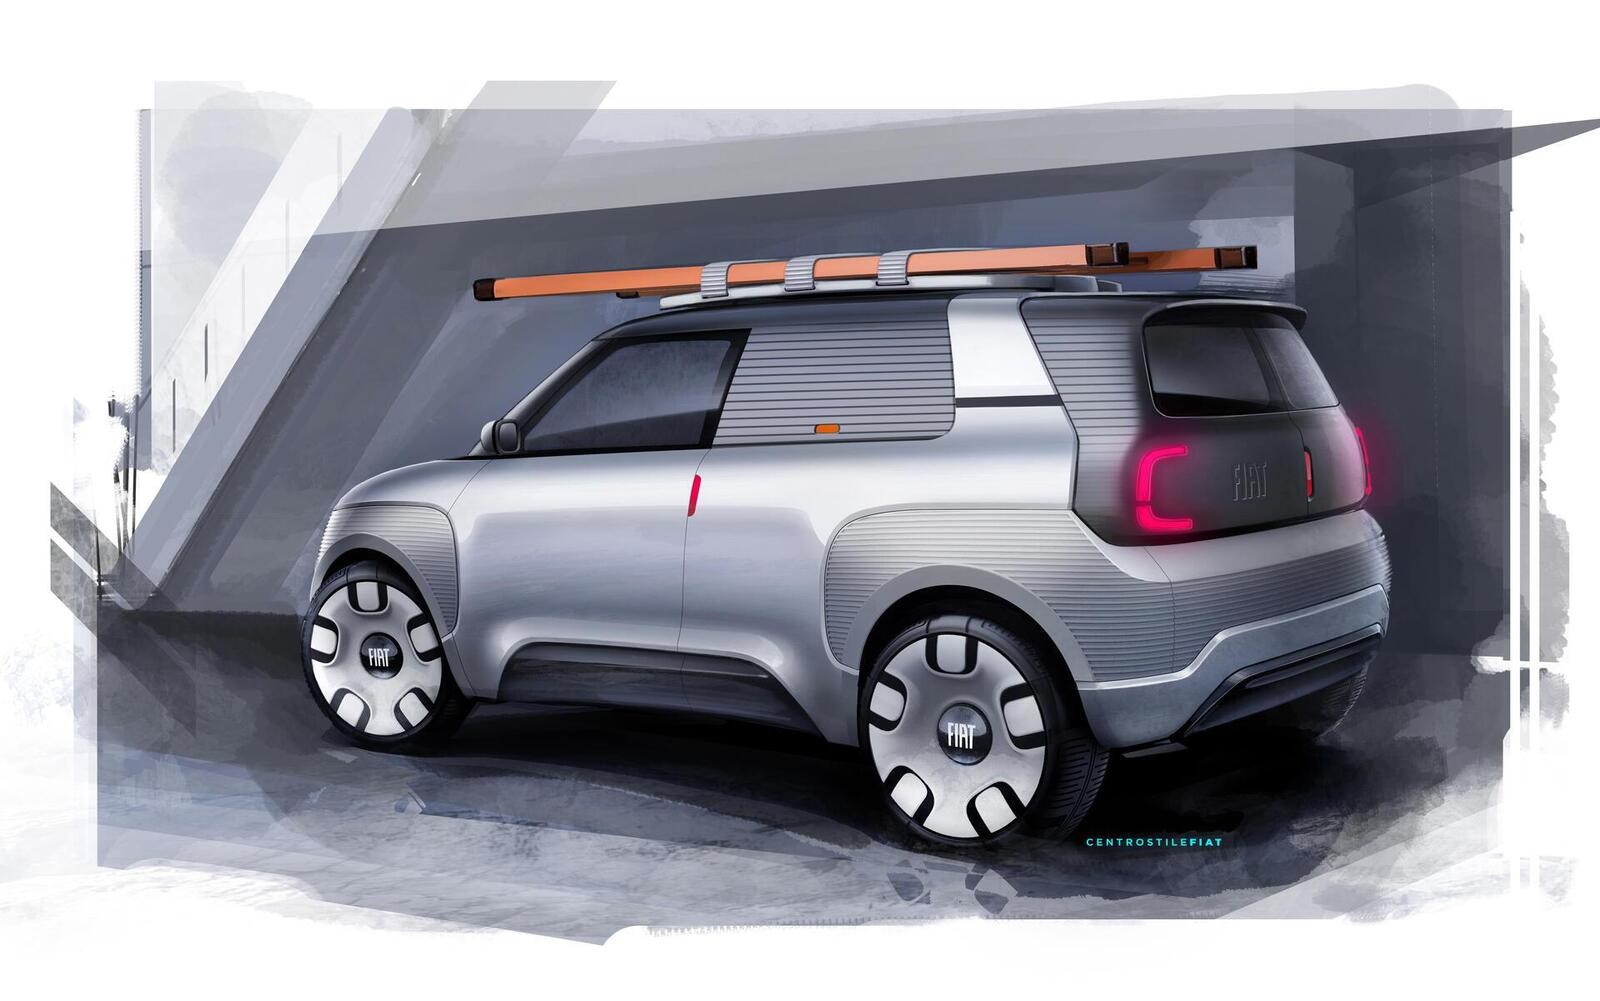 fiat-newest-concept-is-a-modular-electric-car-you-customize-10.jpg